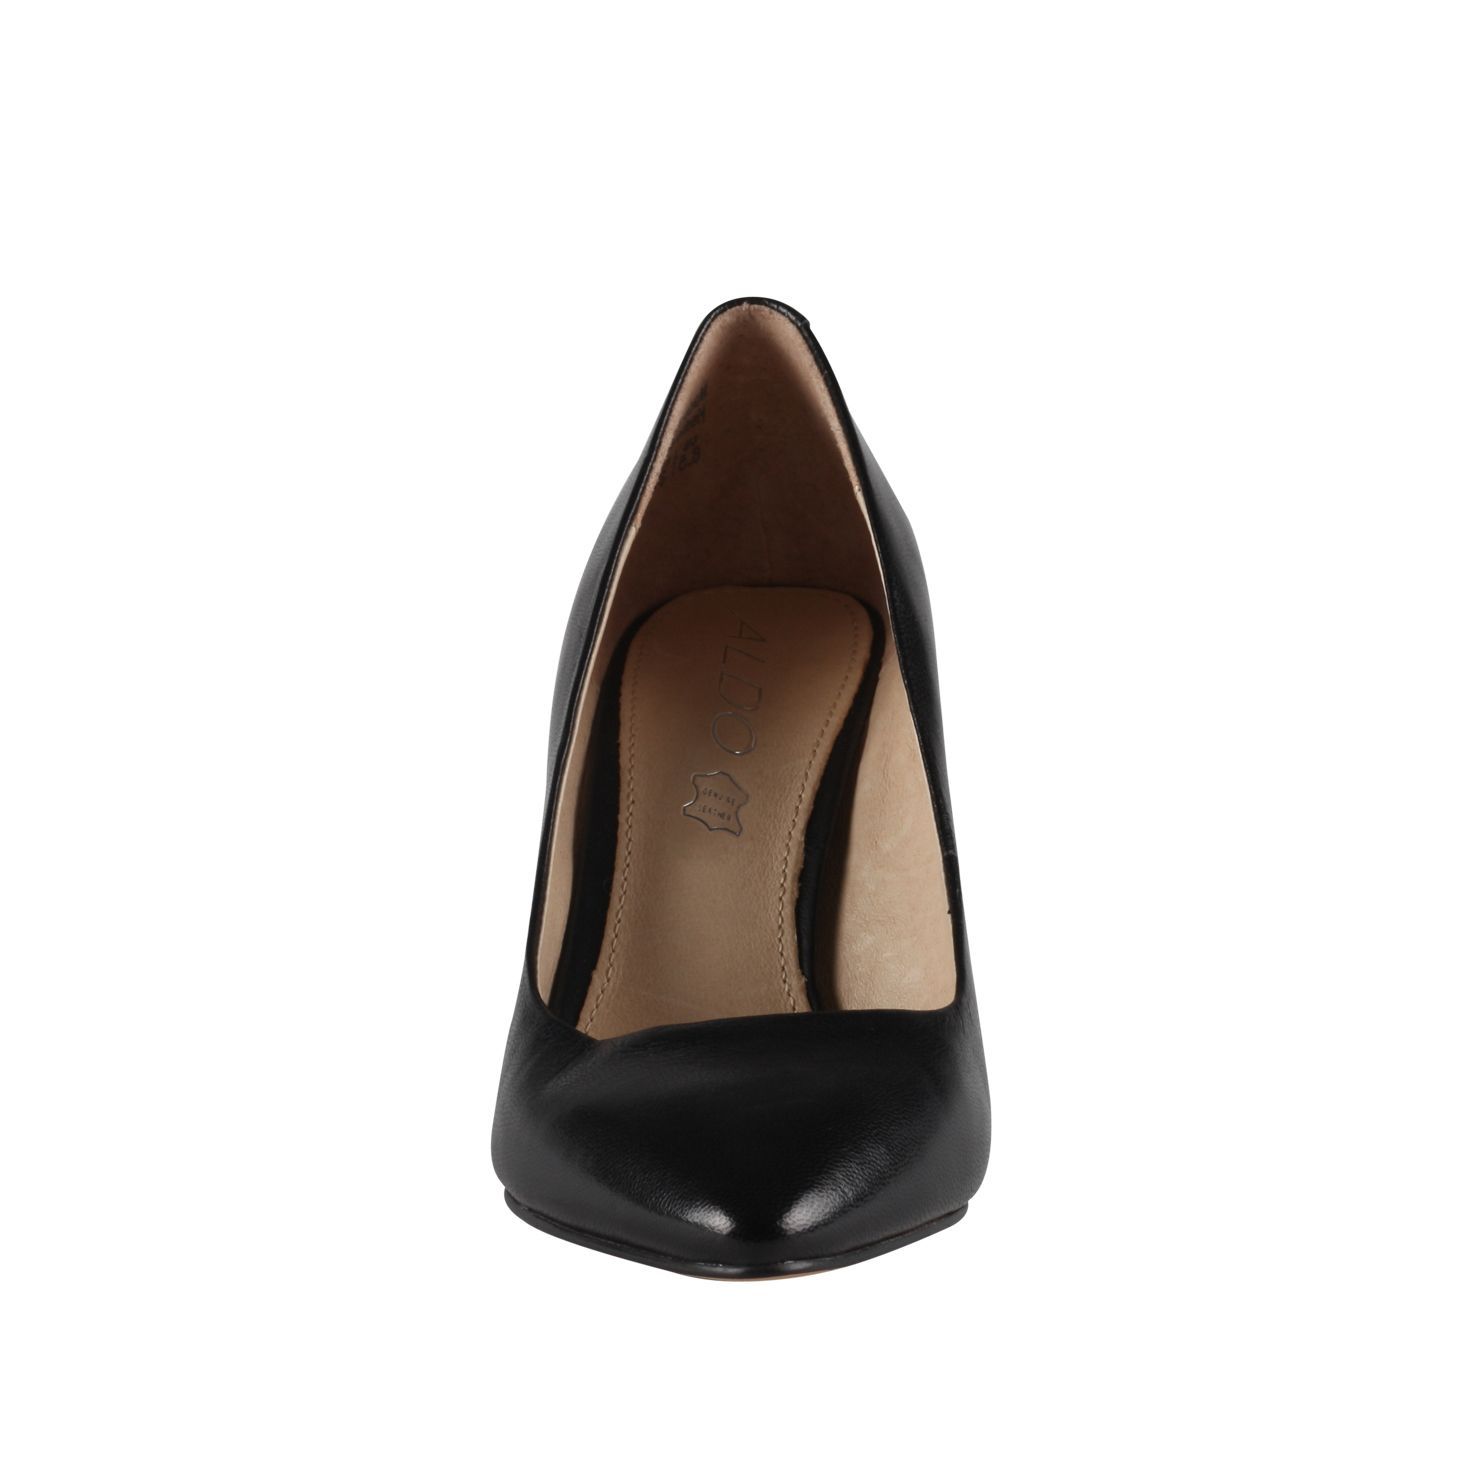 Bonomi court shoes